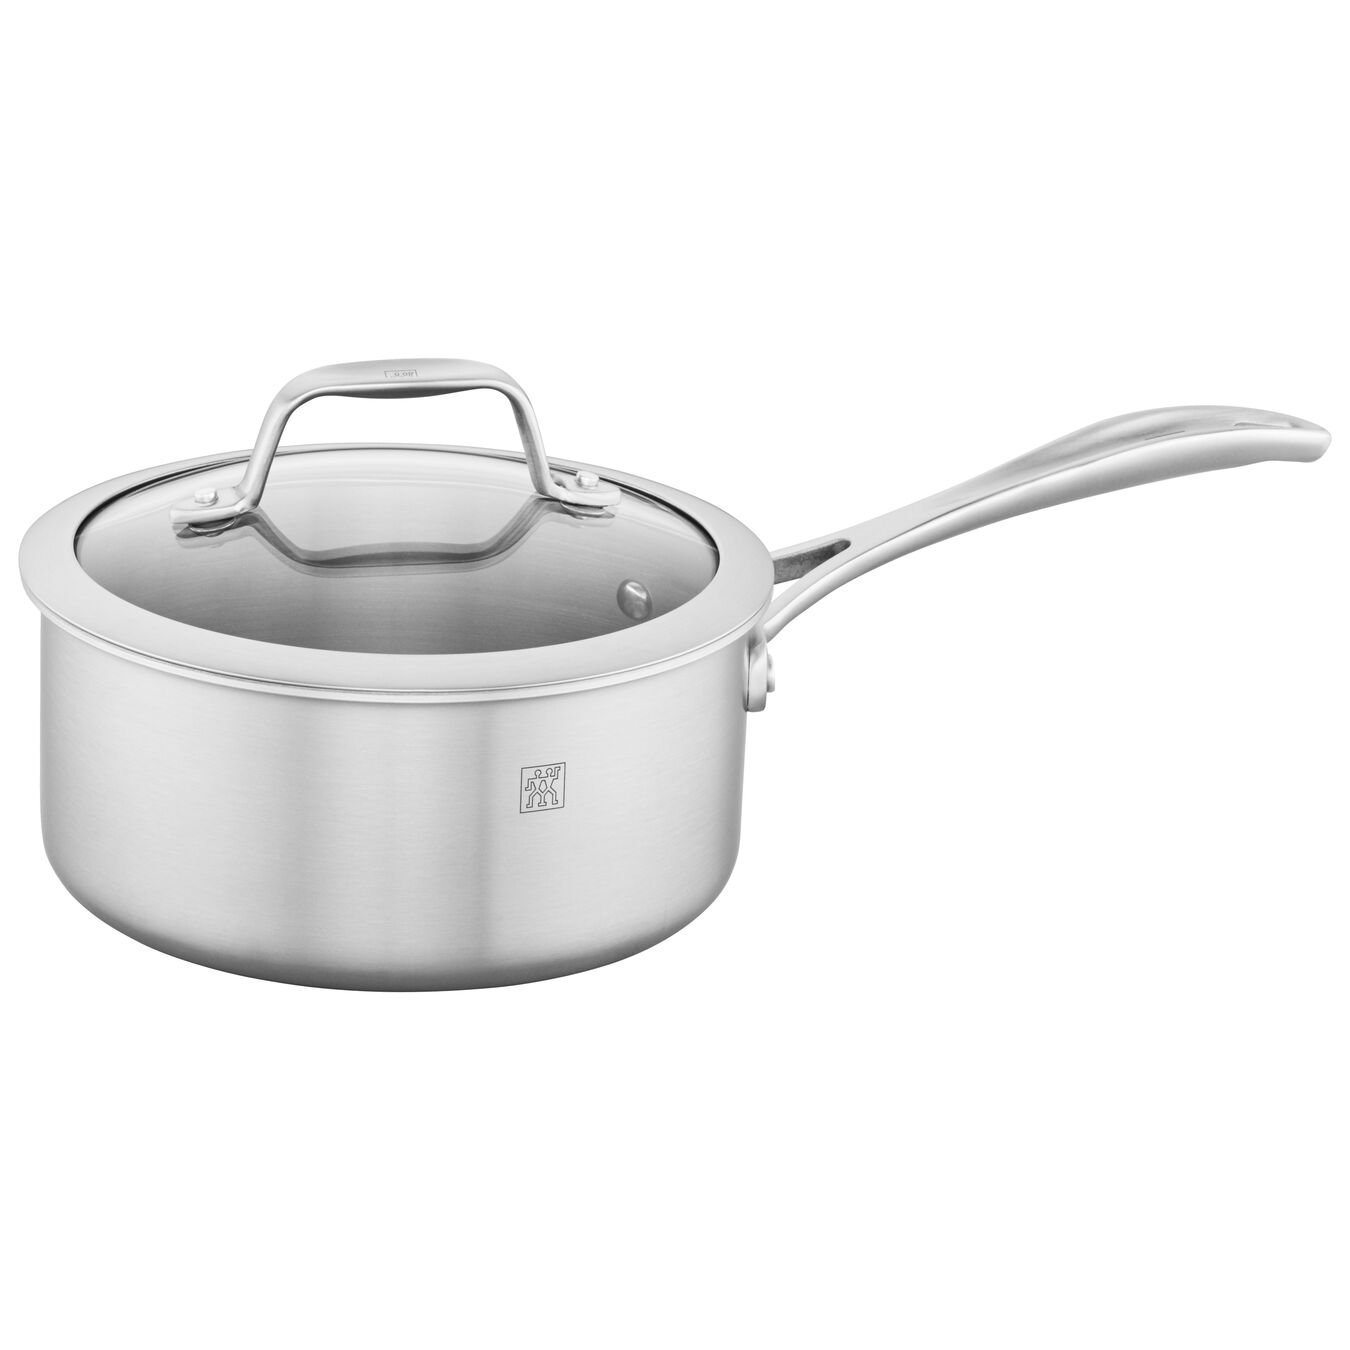 3-ply 2-qt Stainless Steel Saucepan,,large 2